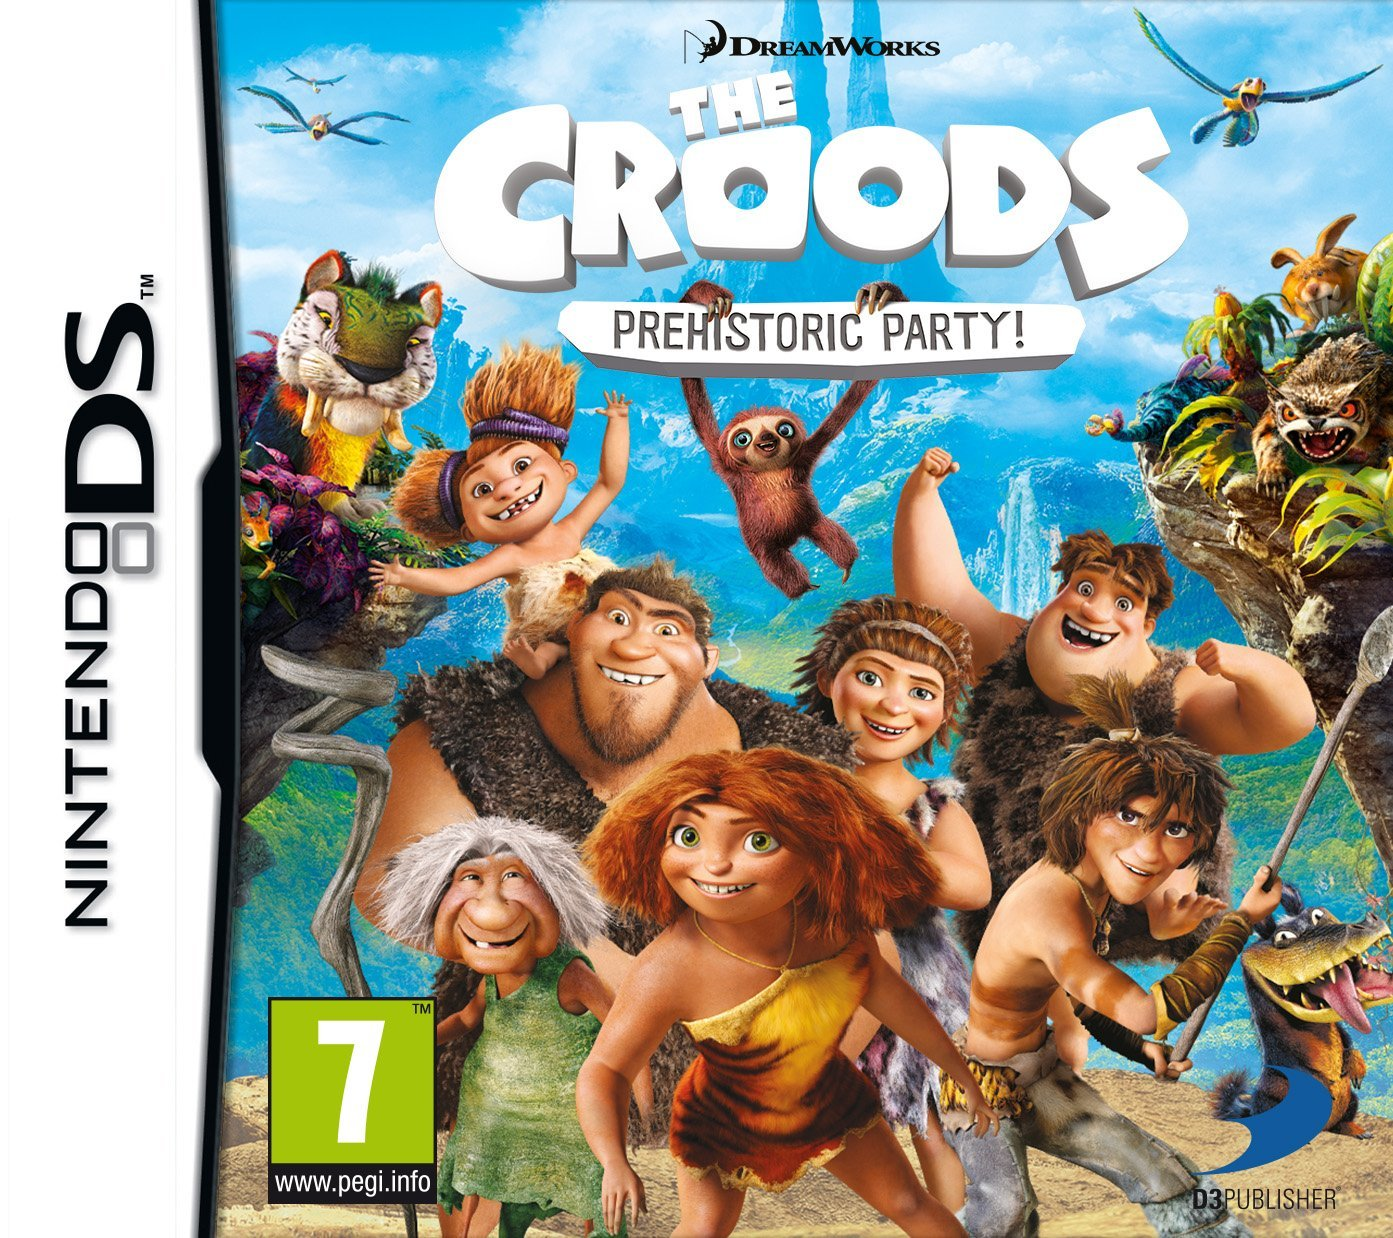 17133f899 TGDB - Browse - Game - DreamWorks The Croods  Prehistoric Party!